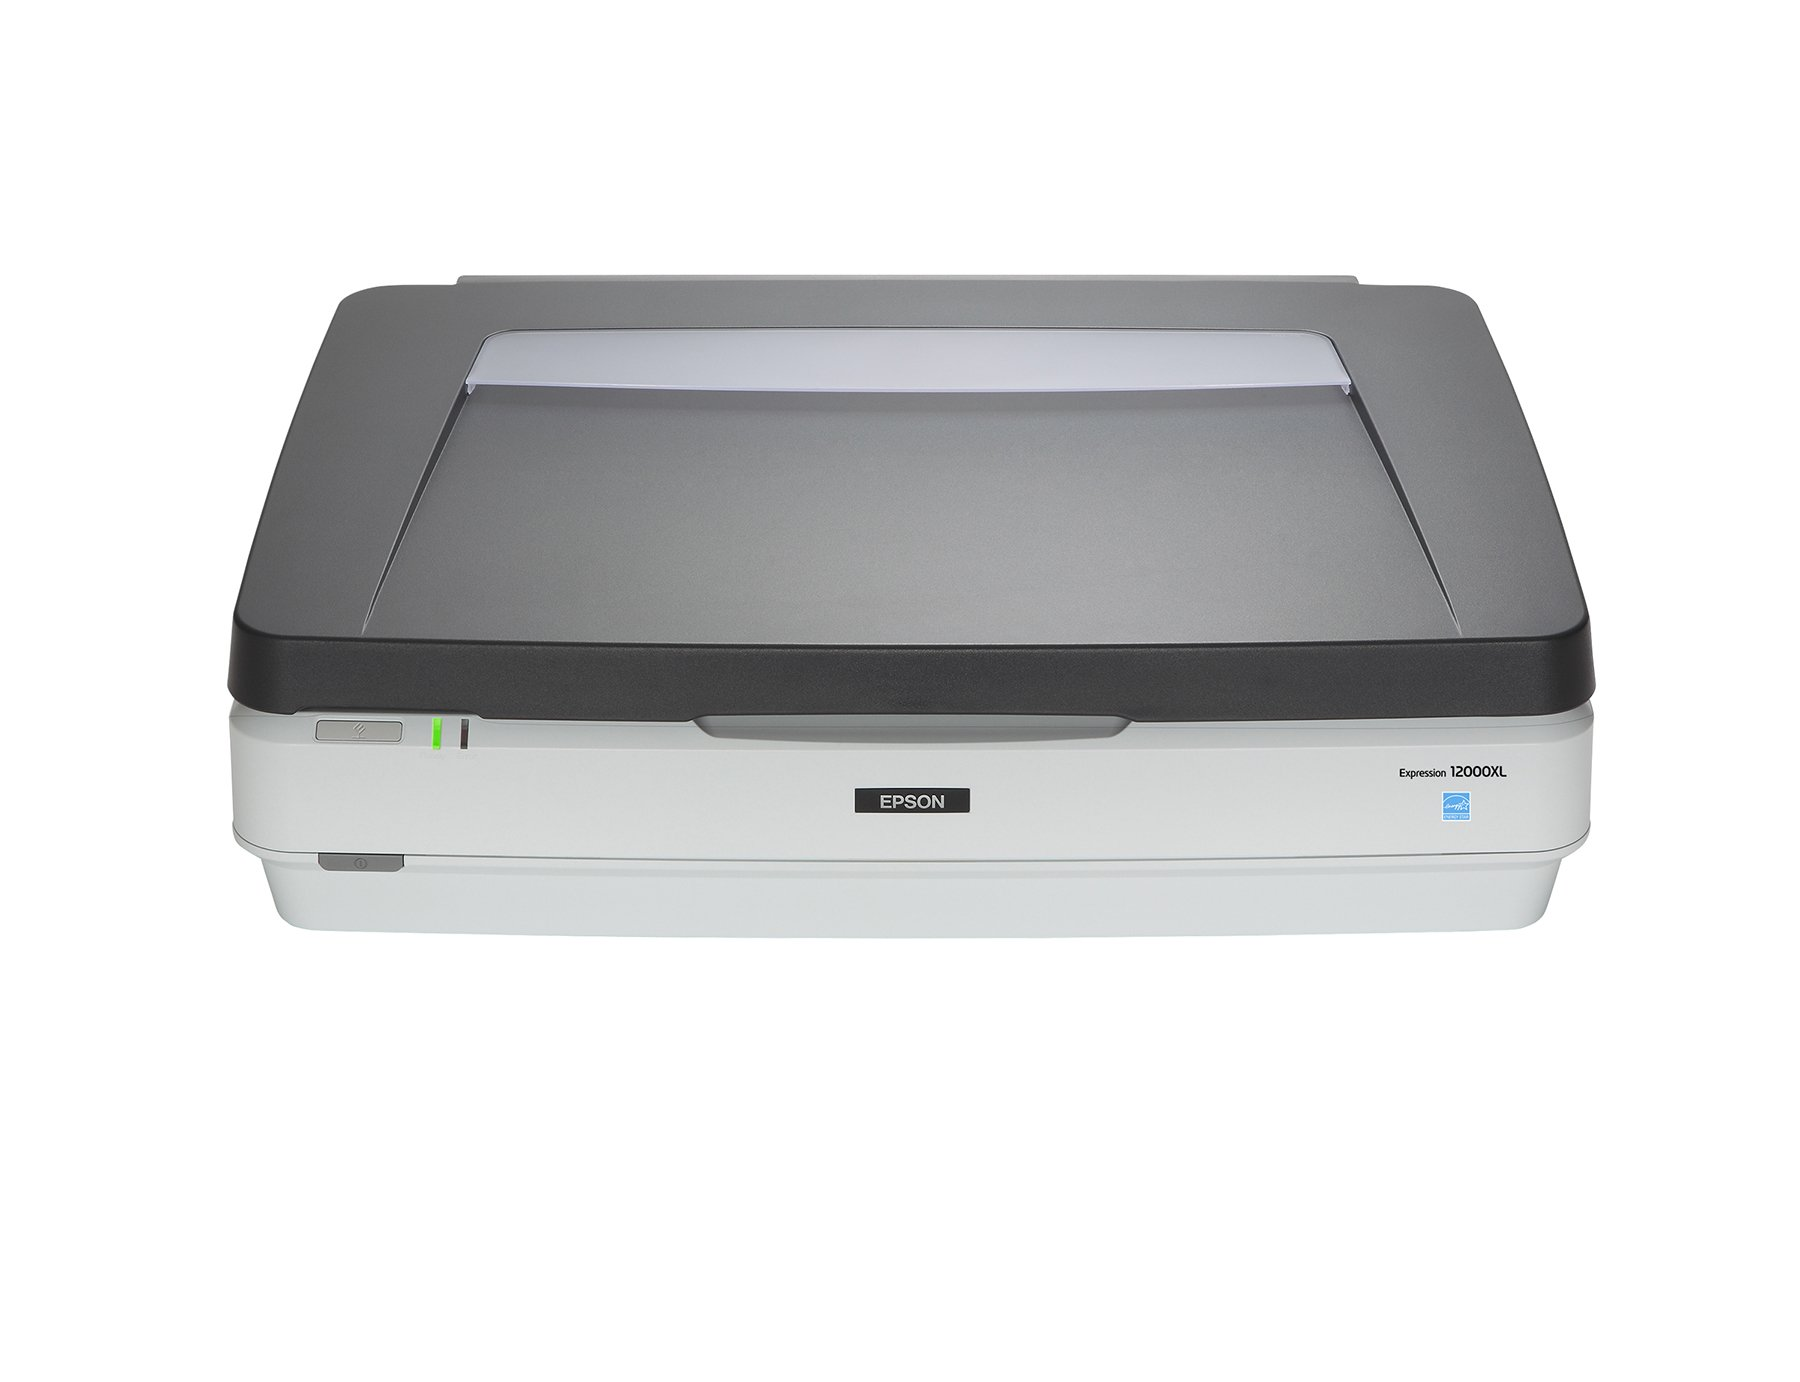 Epson 12000XL-PH Expression Flatbed Scanner by Epson